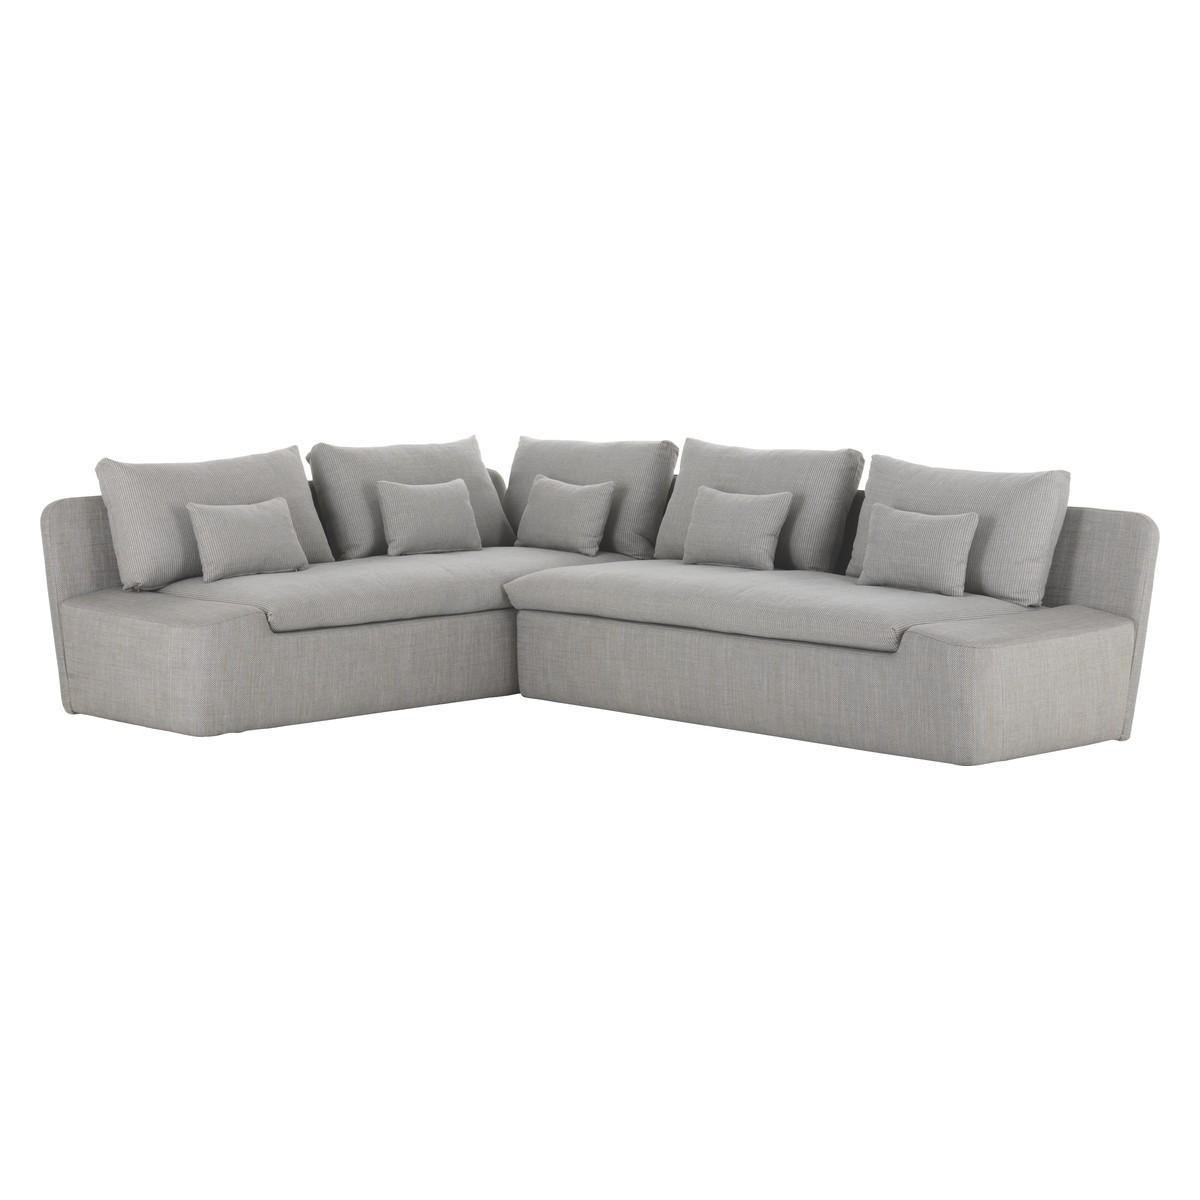 Large Corner Sofa Cheap | Savae Pertaining To Large Black Leather Corner Sofas (Image 12 of 22)